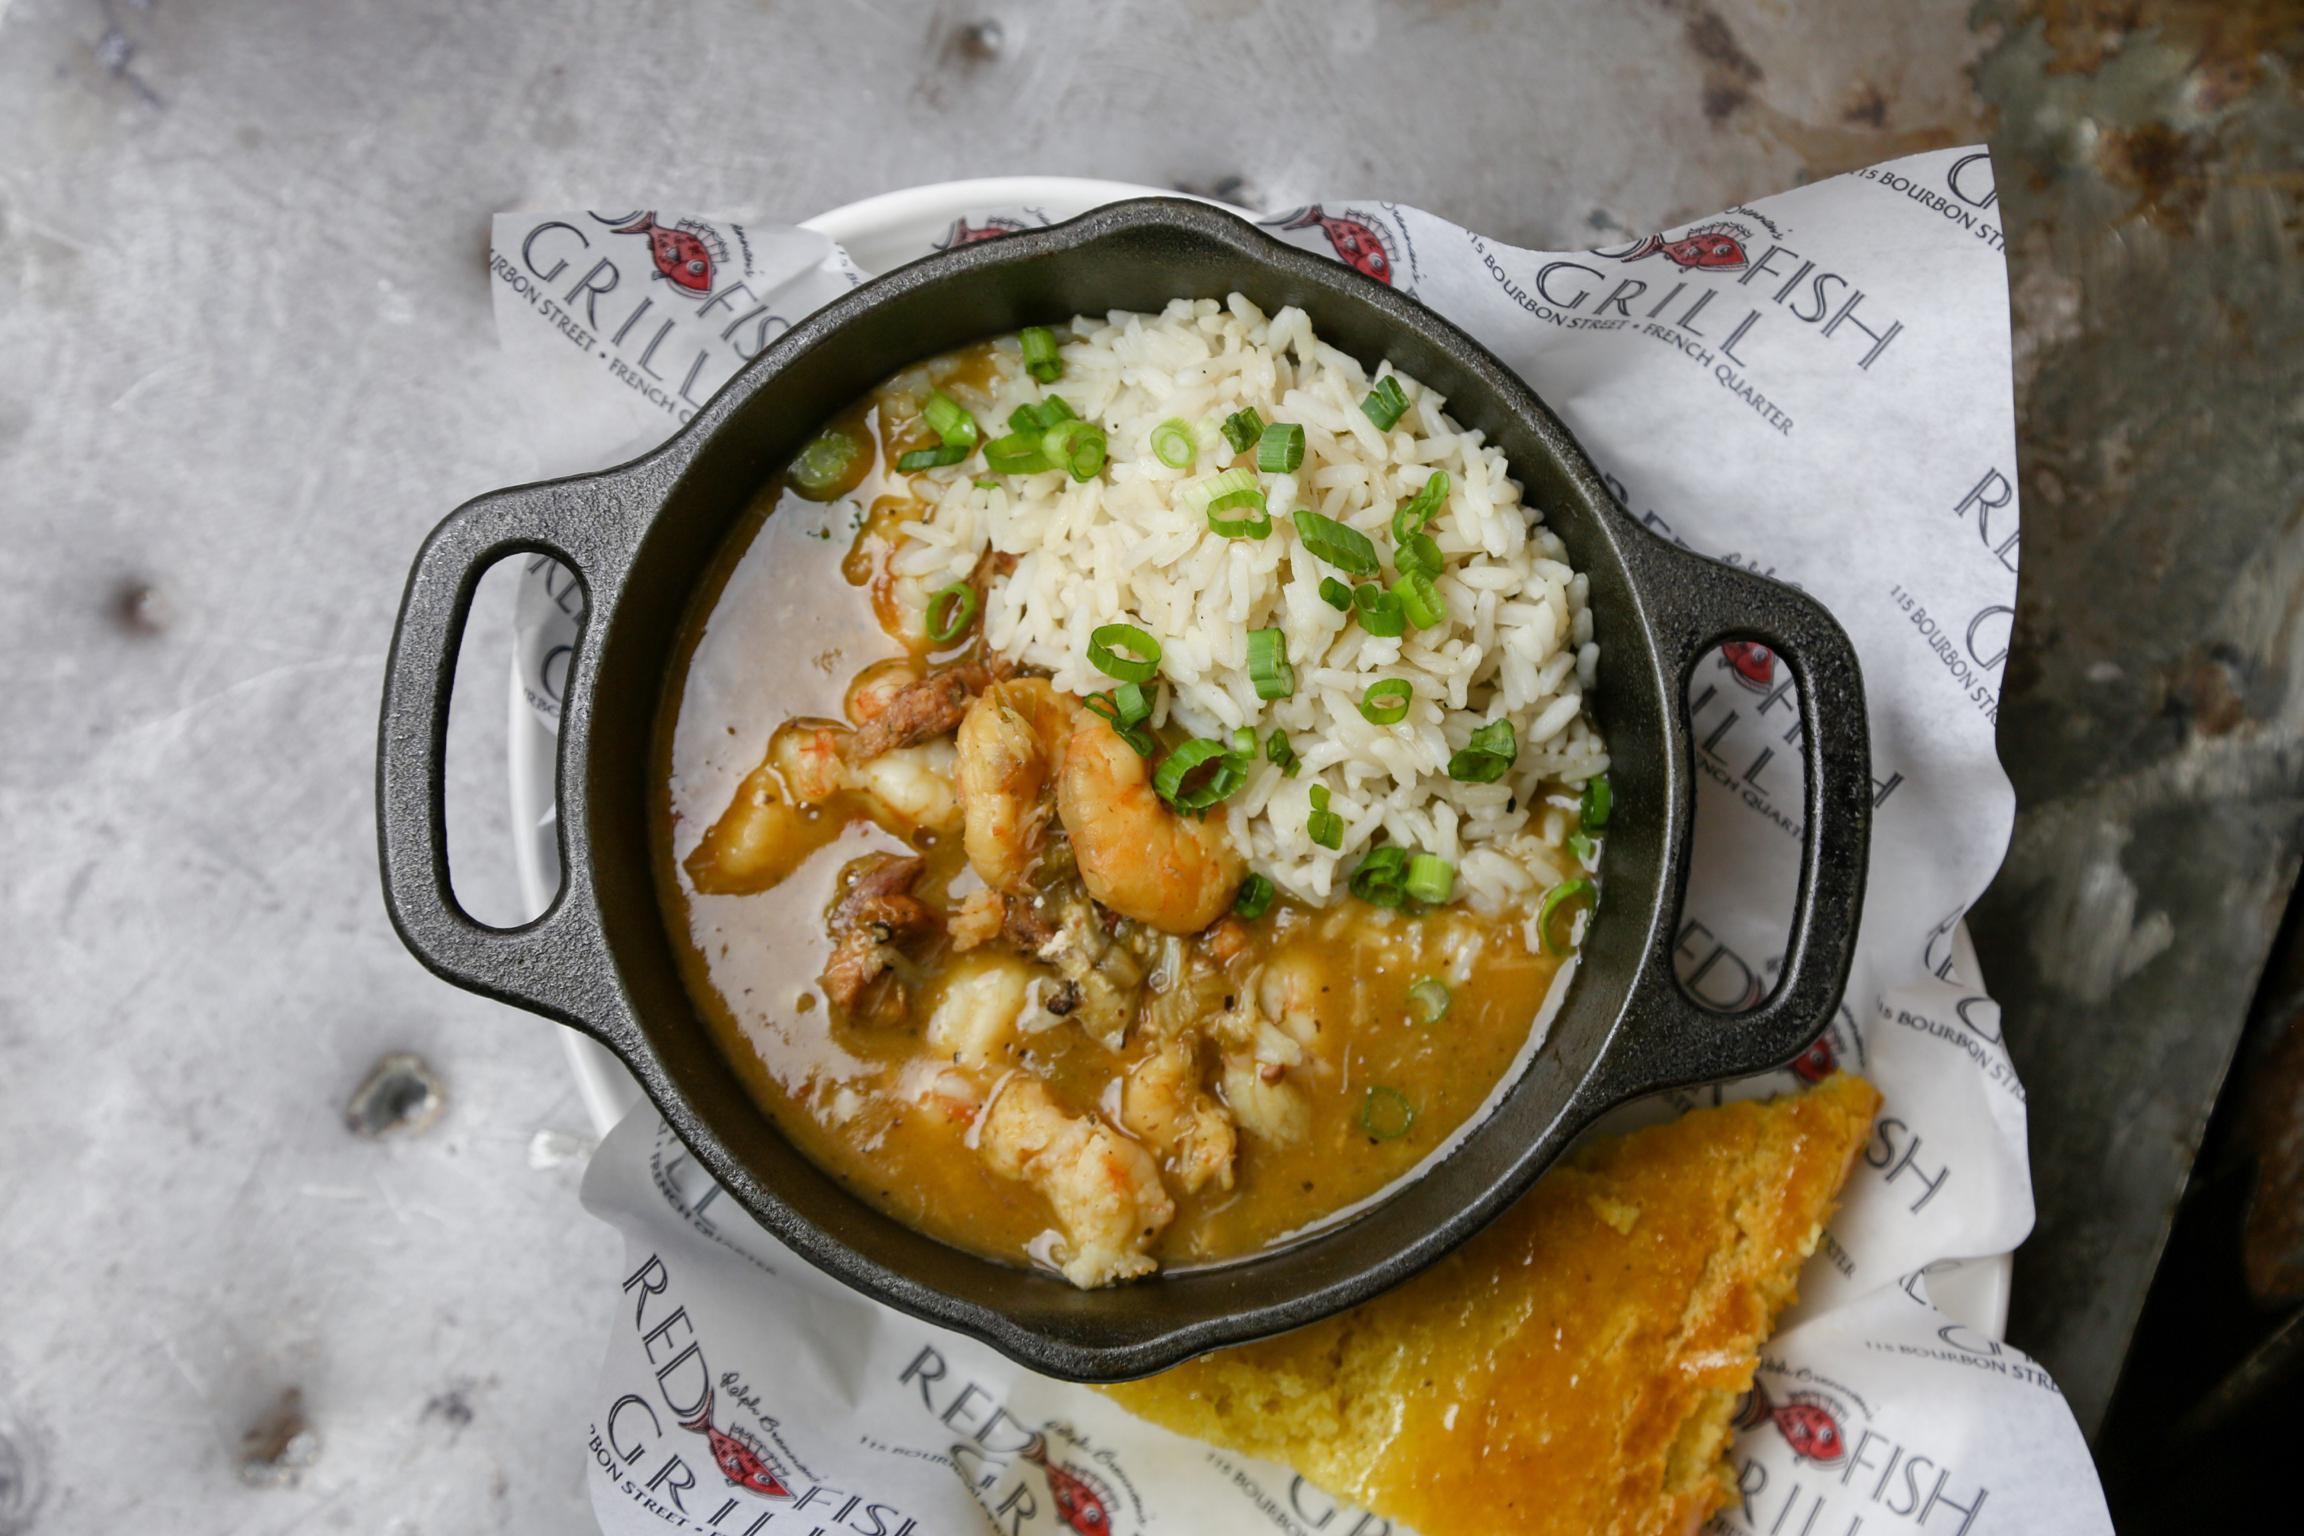 Alligator Sausage & Seafood Gumbo Photo